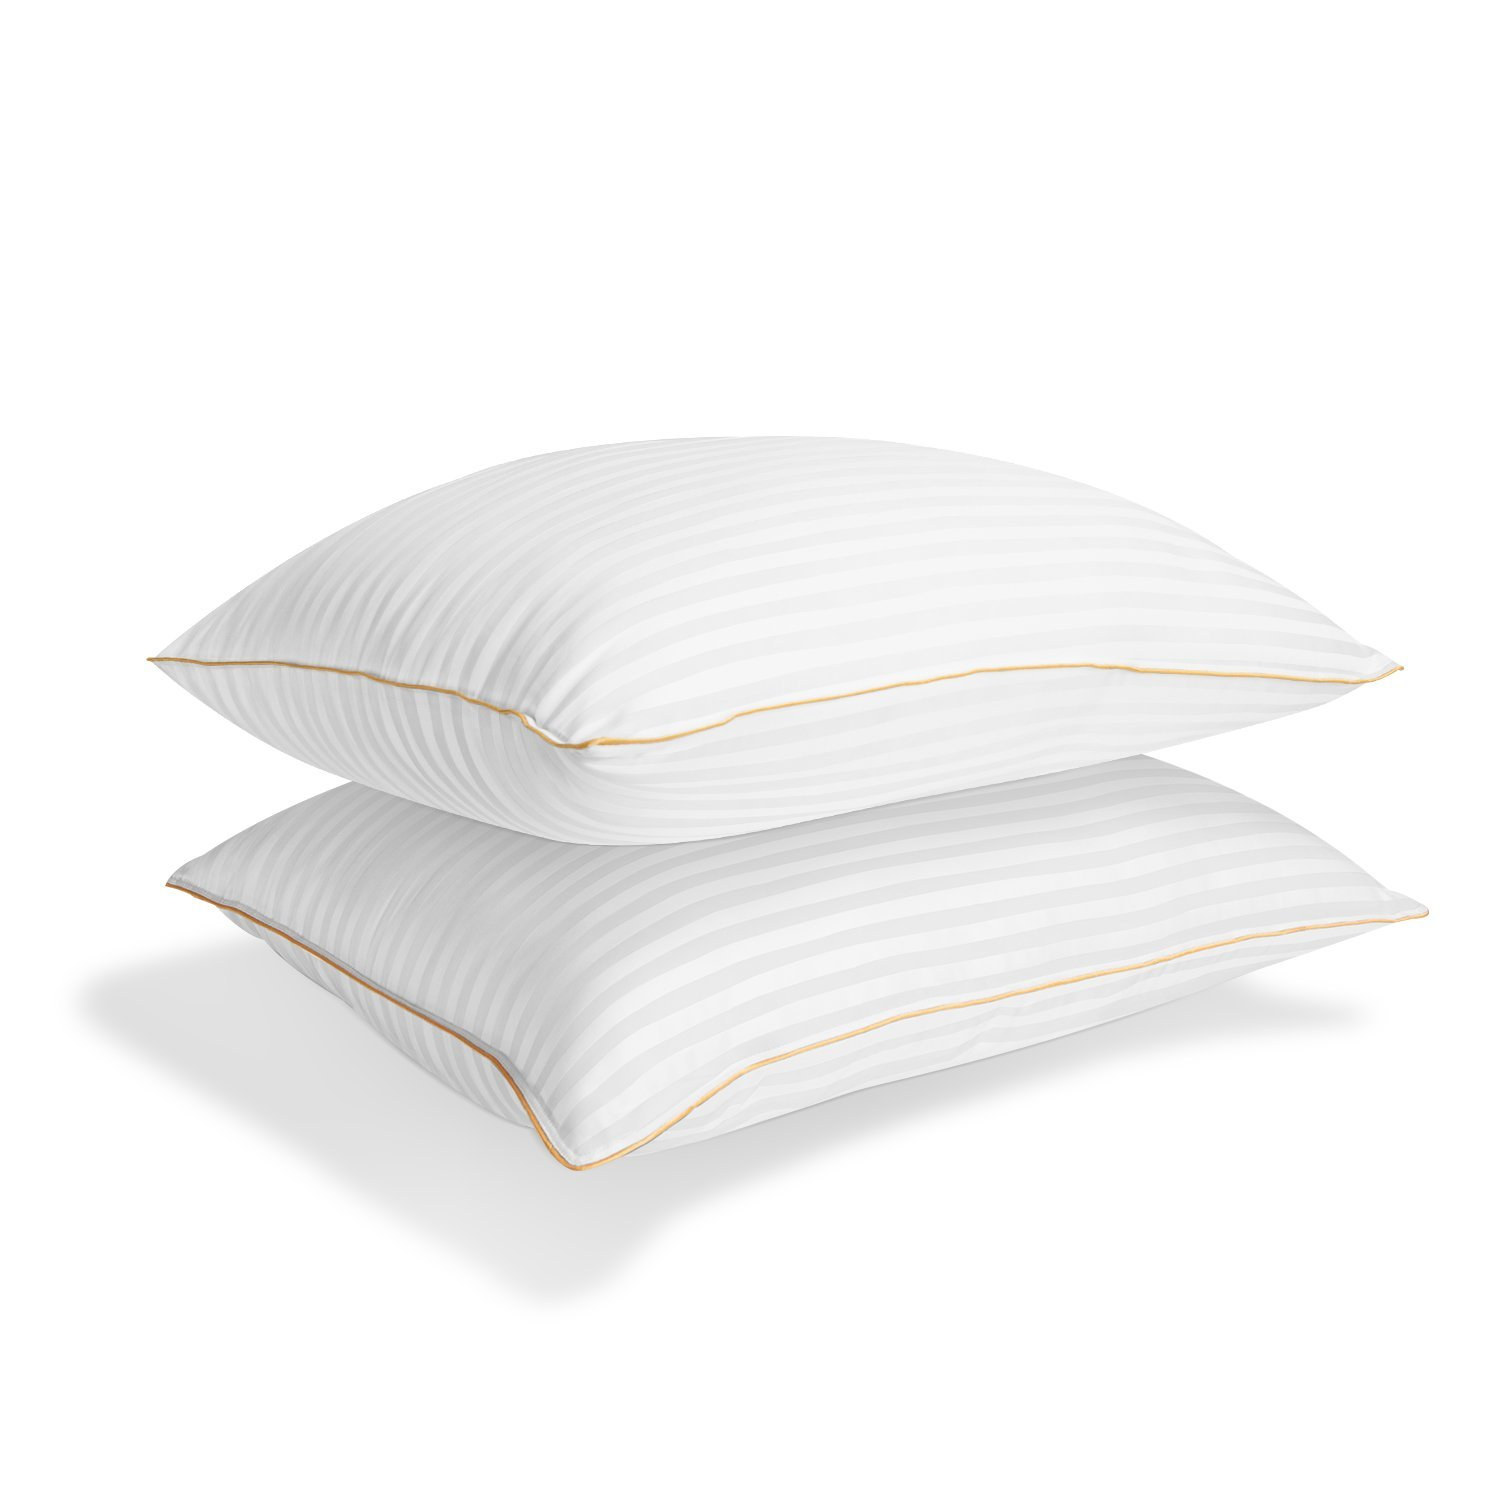 Italian Luxury Plush Gel Pillows 2100 Series (2-Pack) - Premium Quality Luxury Hotel Collection - Hypoallergenic & Dust Mite Resistant - Queen by Italian Luxury